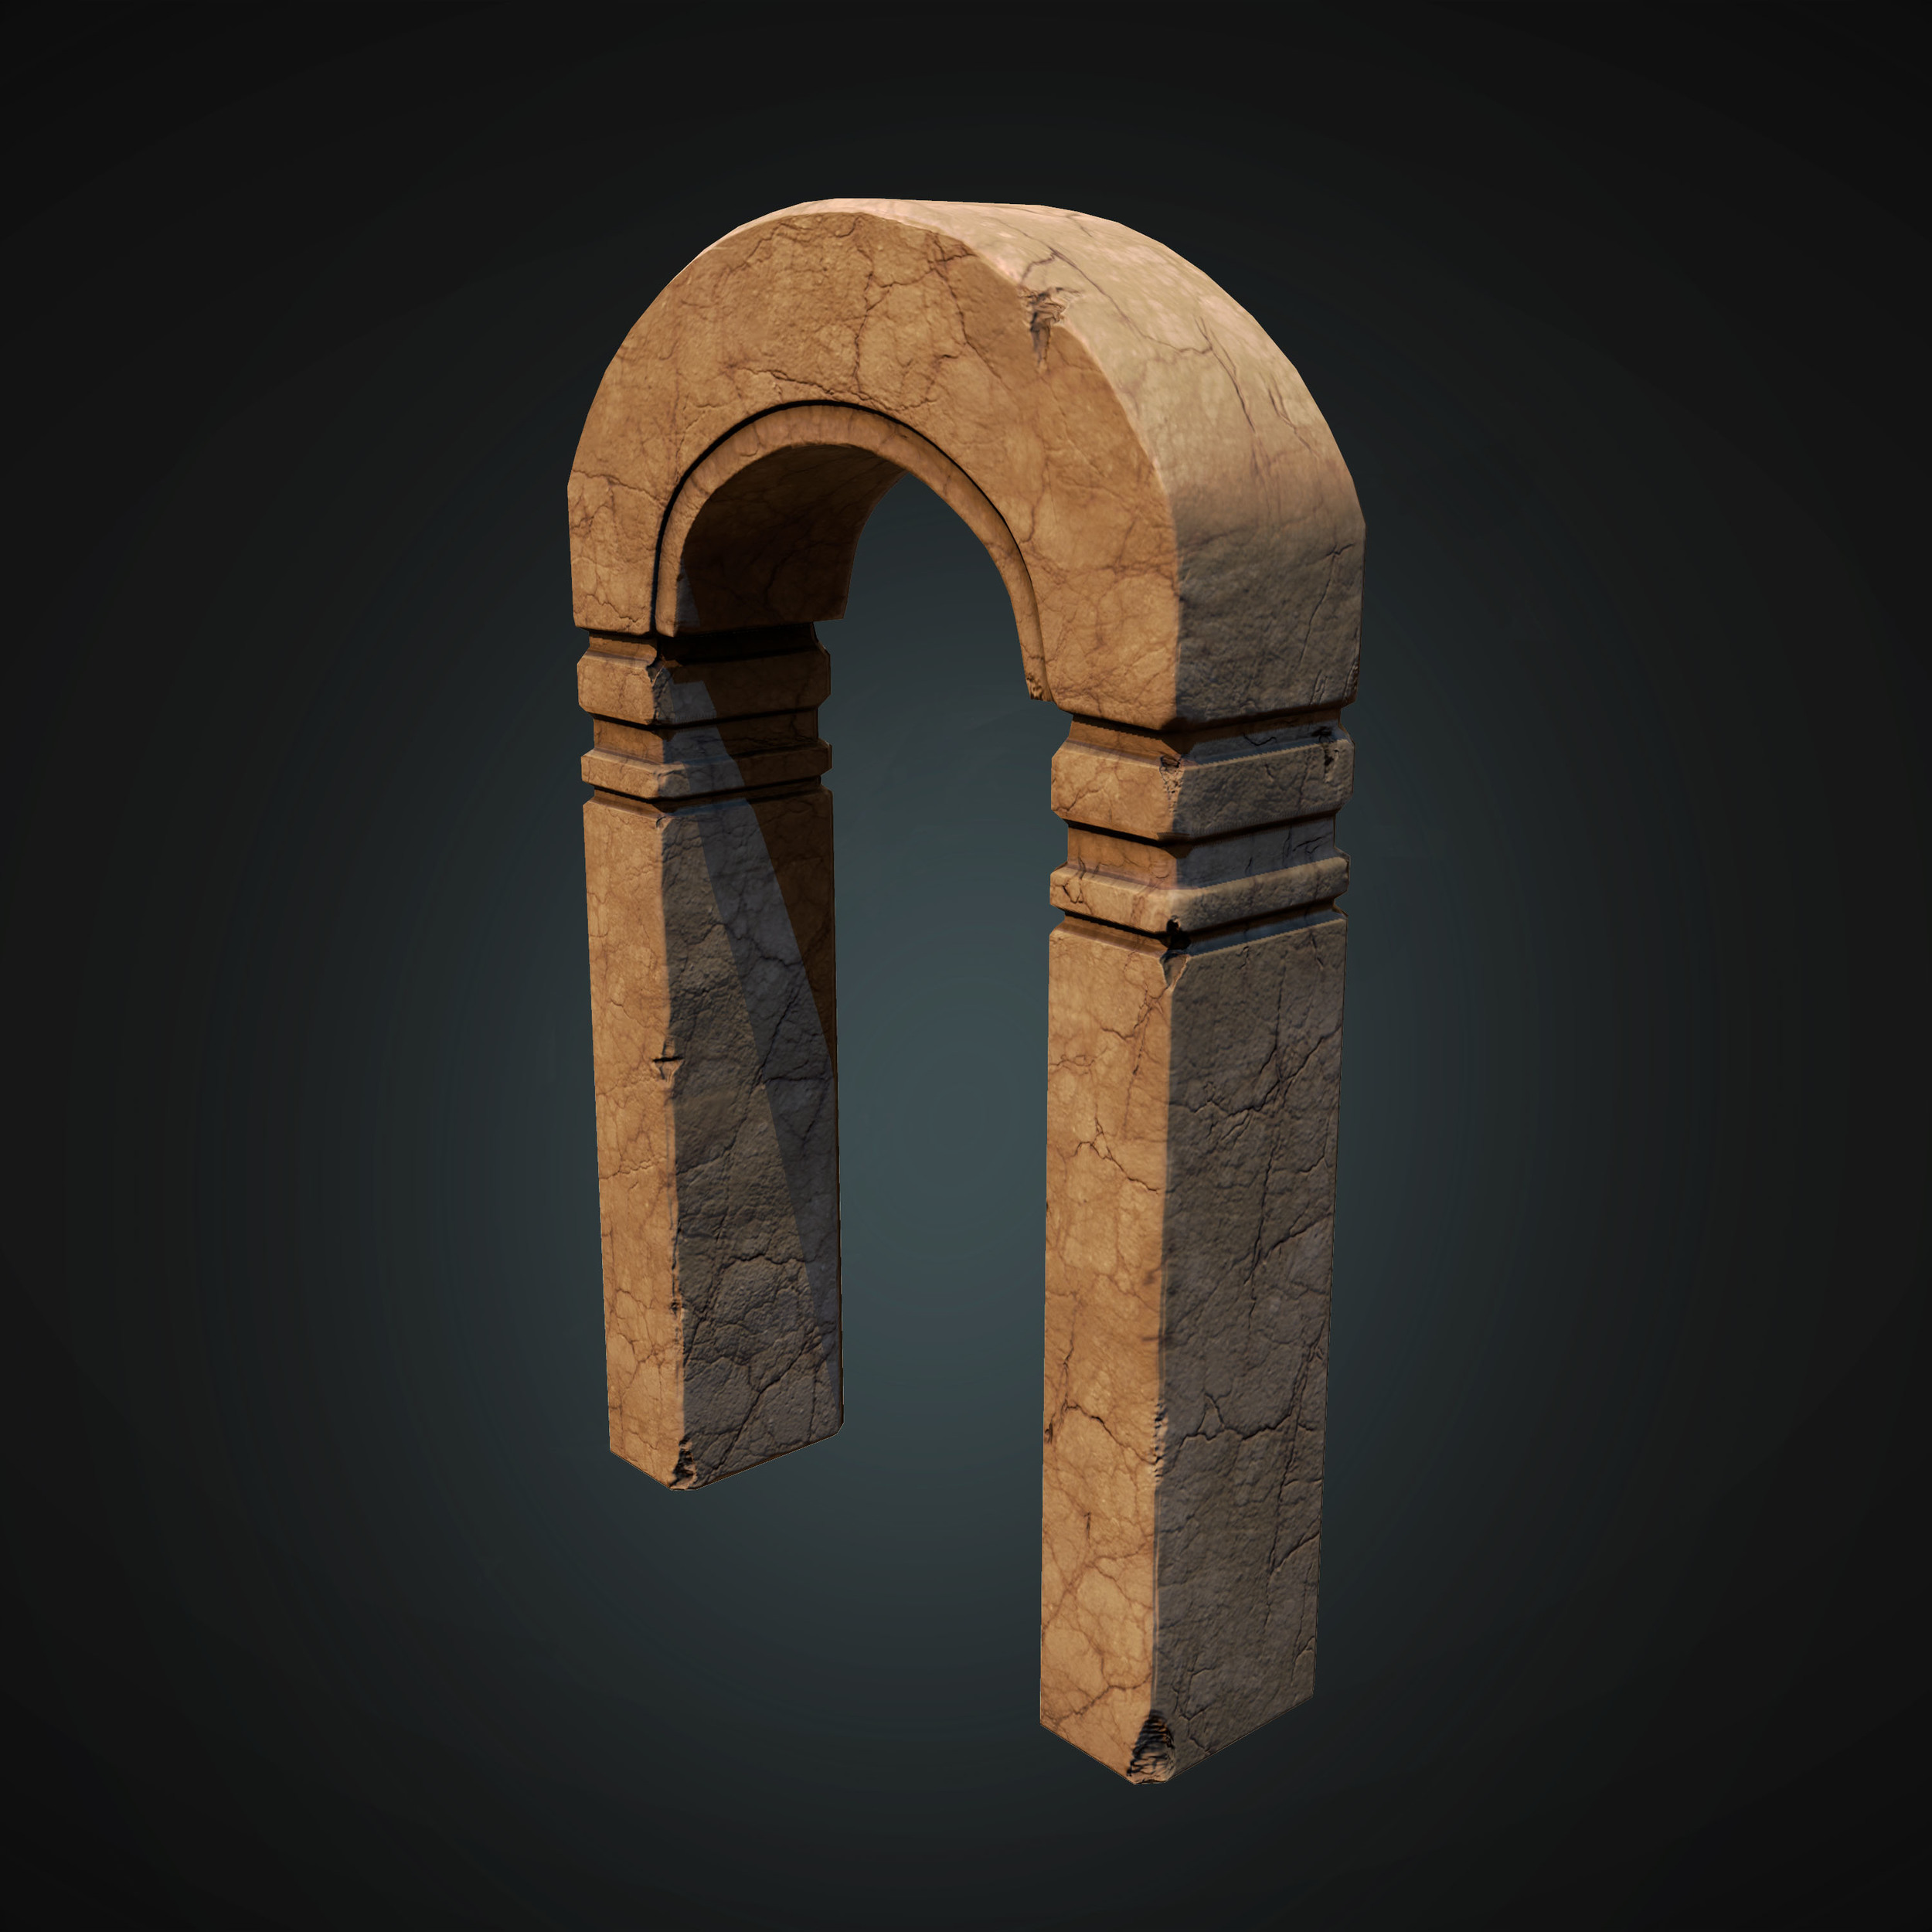 Arch_Lowpoly_Angle.jpg